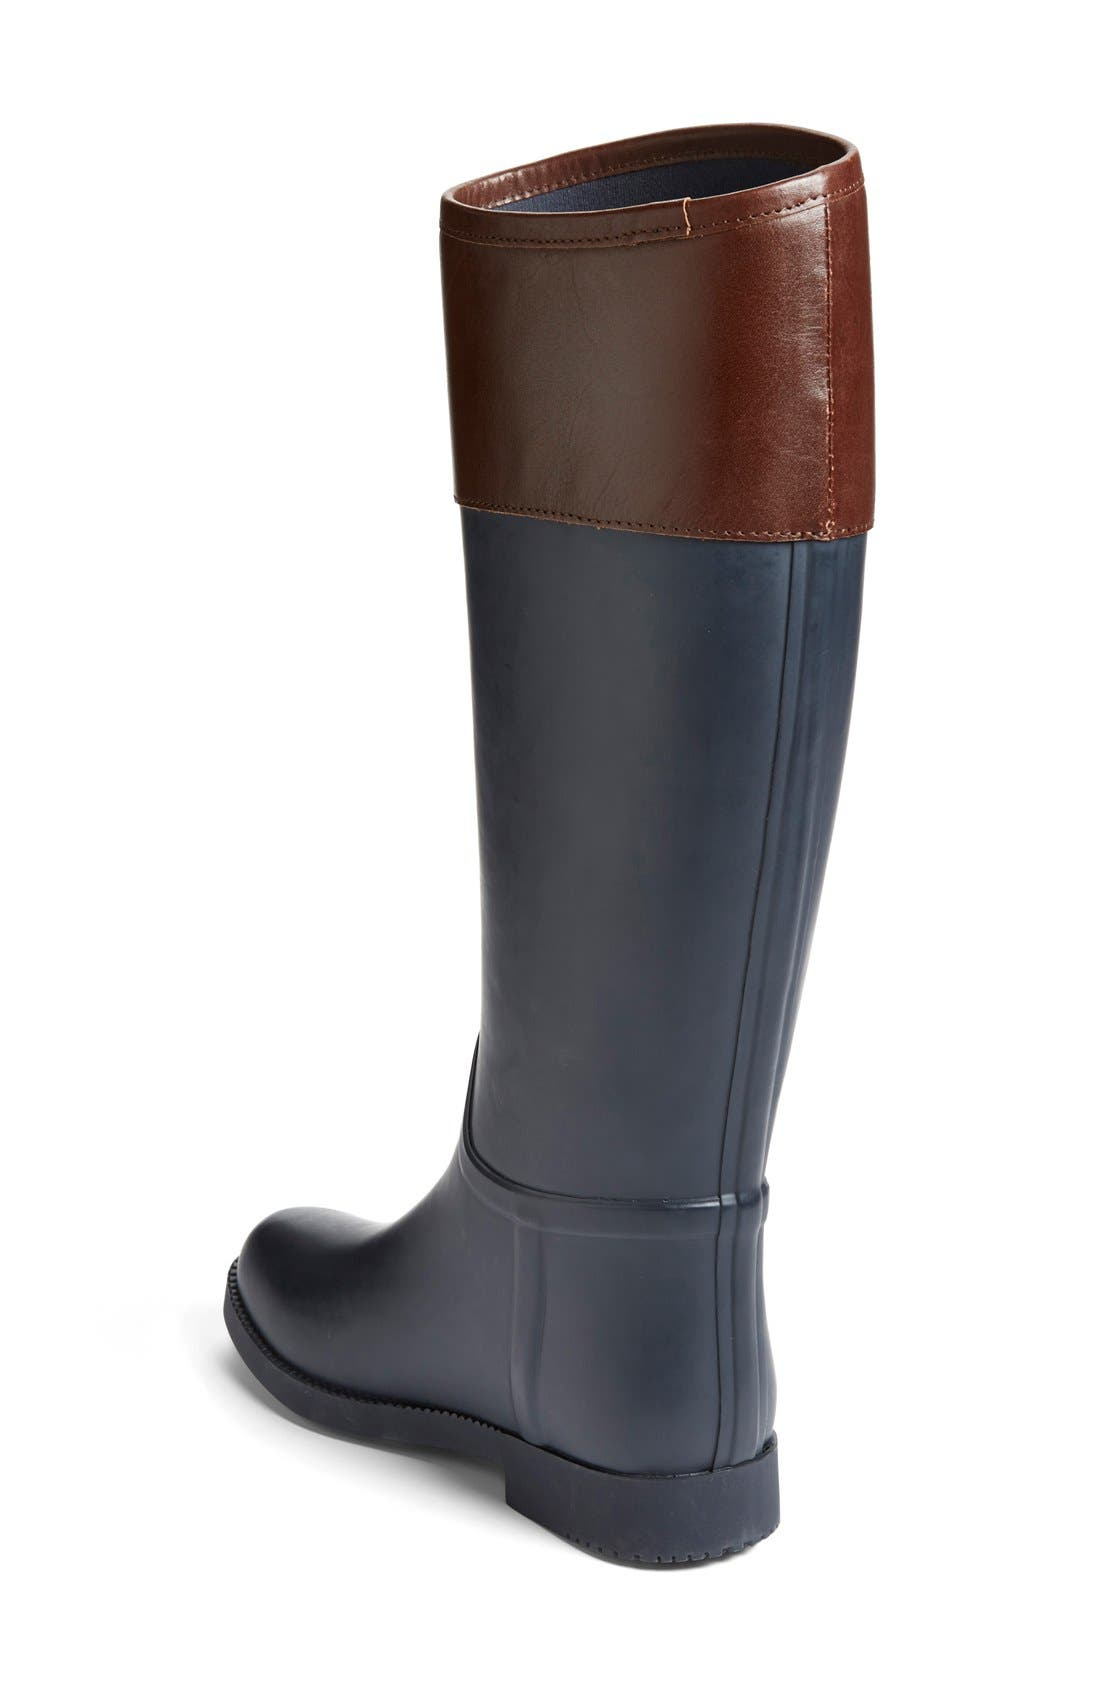 Alternate Image 2  - Tory Burch 'Classic' Rain Boot (Women) (Nordstrom Exclusive)